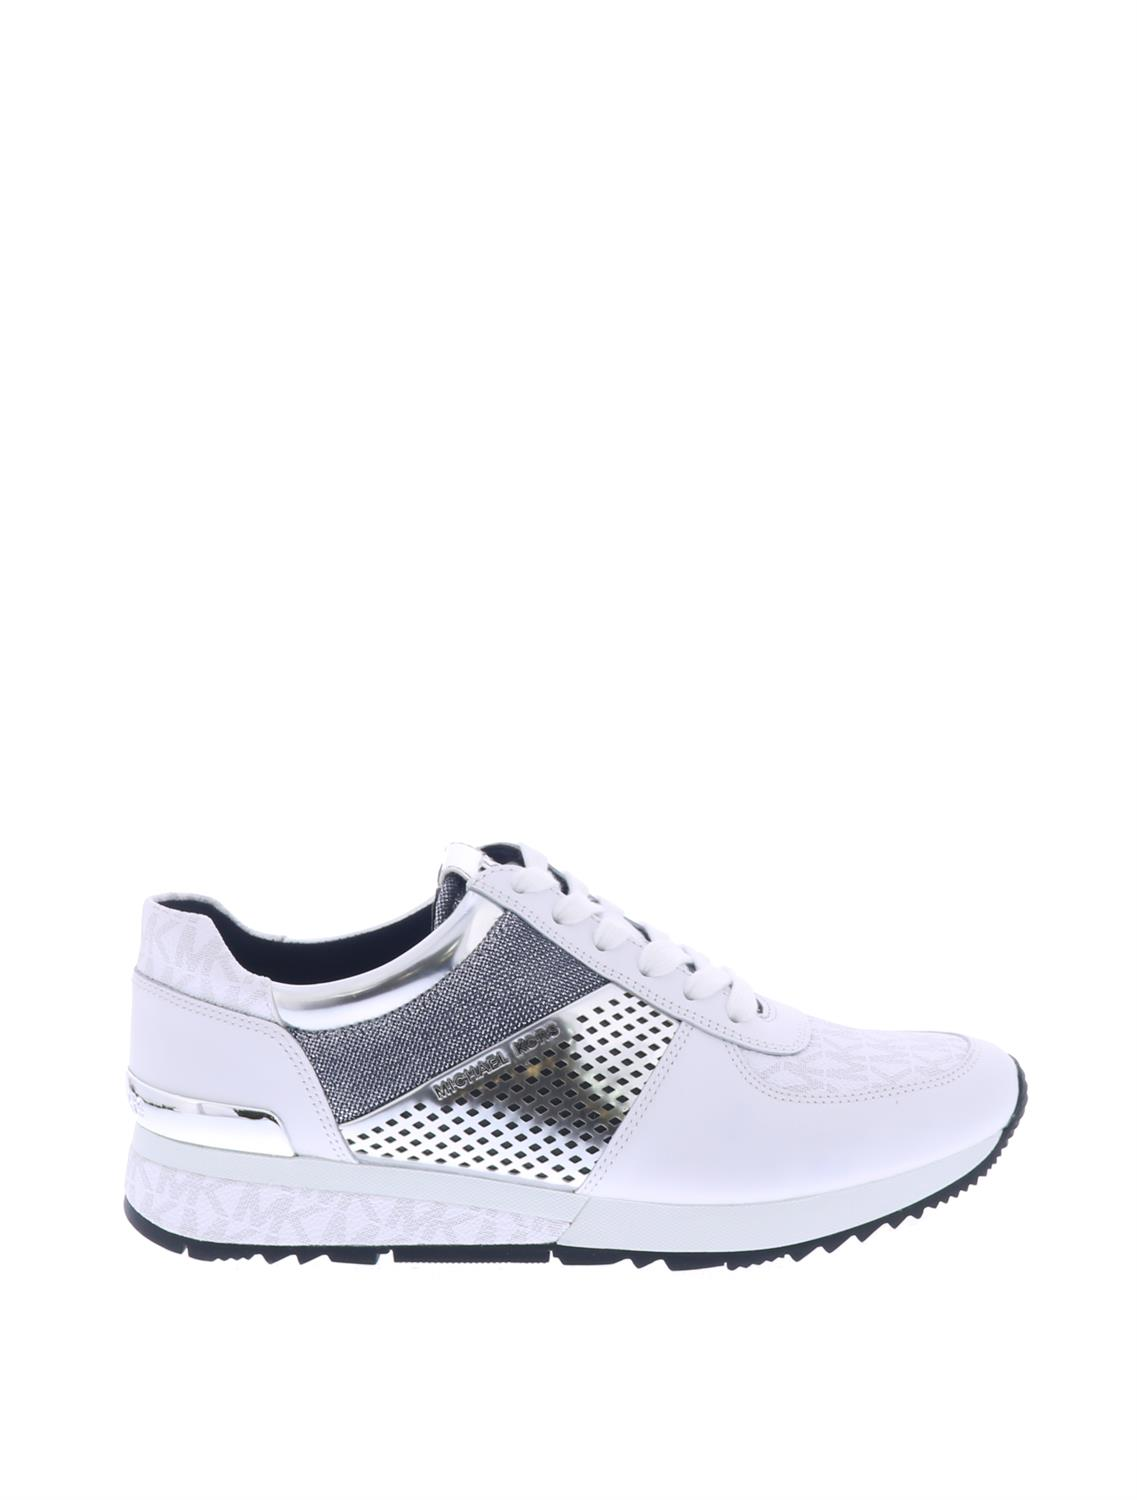 3975b779dc2 < Vorige pagina | Home / Sneakers / Michael Kors Allie Wrap Trainer White  Silver